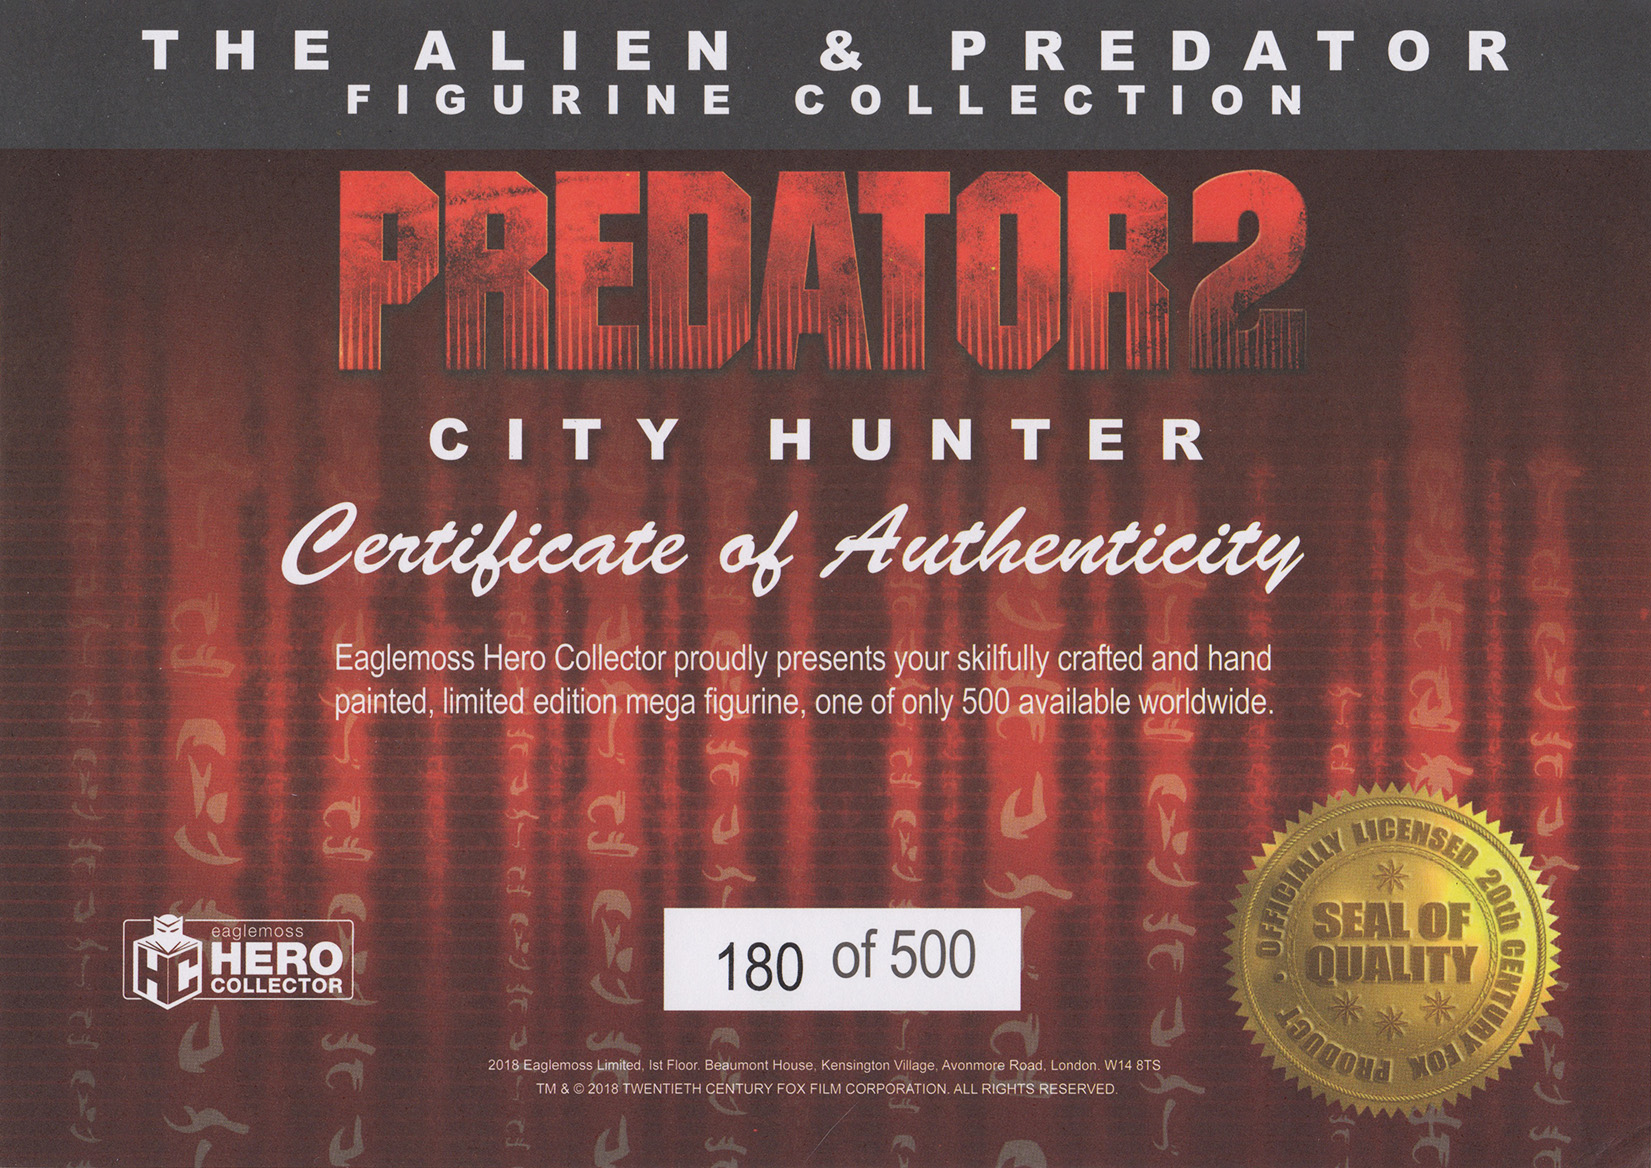 Eaglemoss Alien & Predator Magazine Issue Mega 5 Certificate